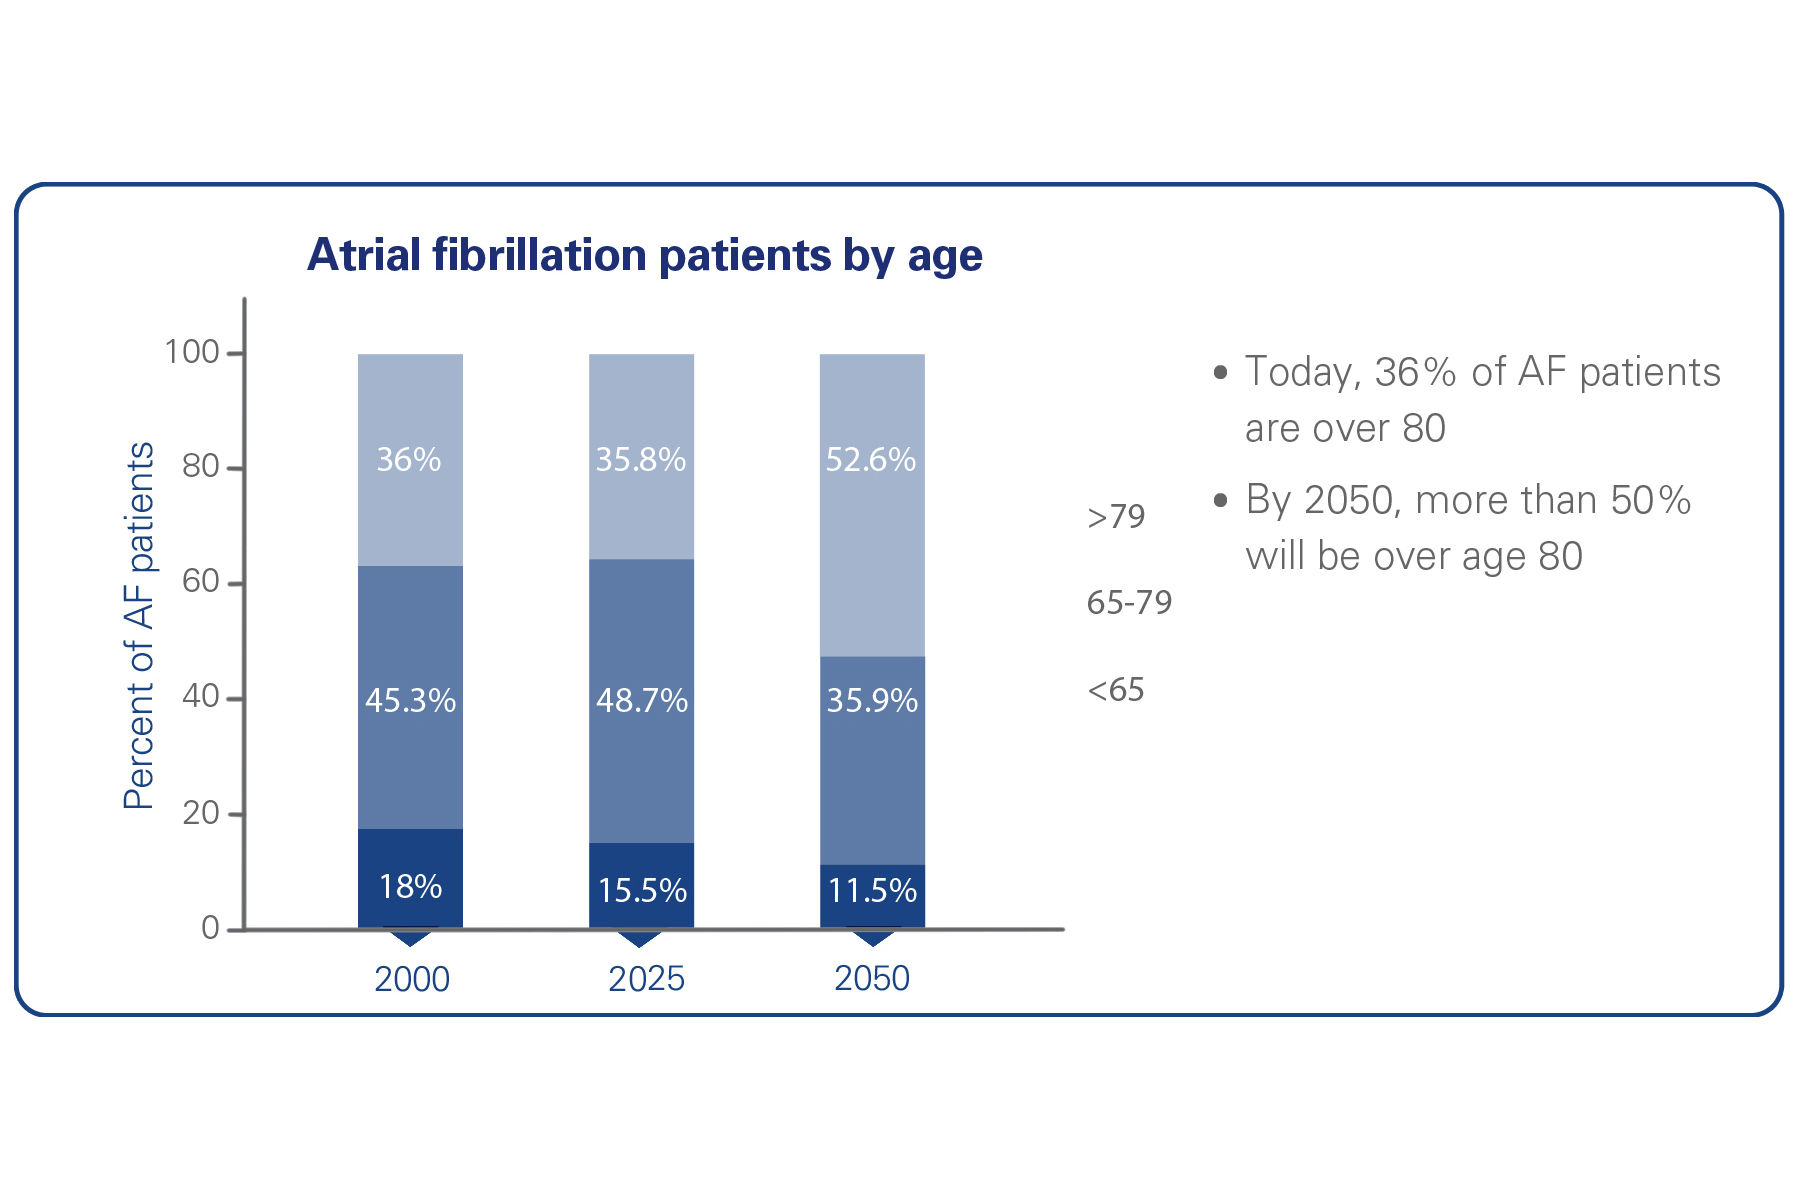 BSC_Watchman_AF_patients_by_age_Backgrounder_picture2_EN_thumb.jpg